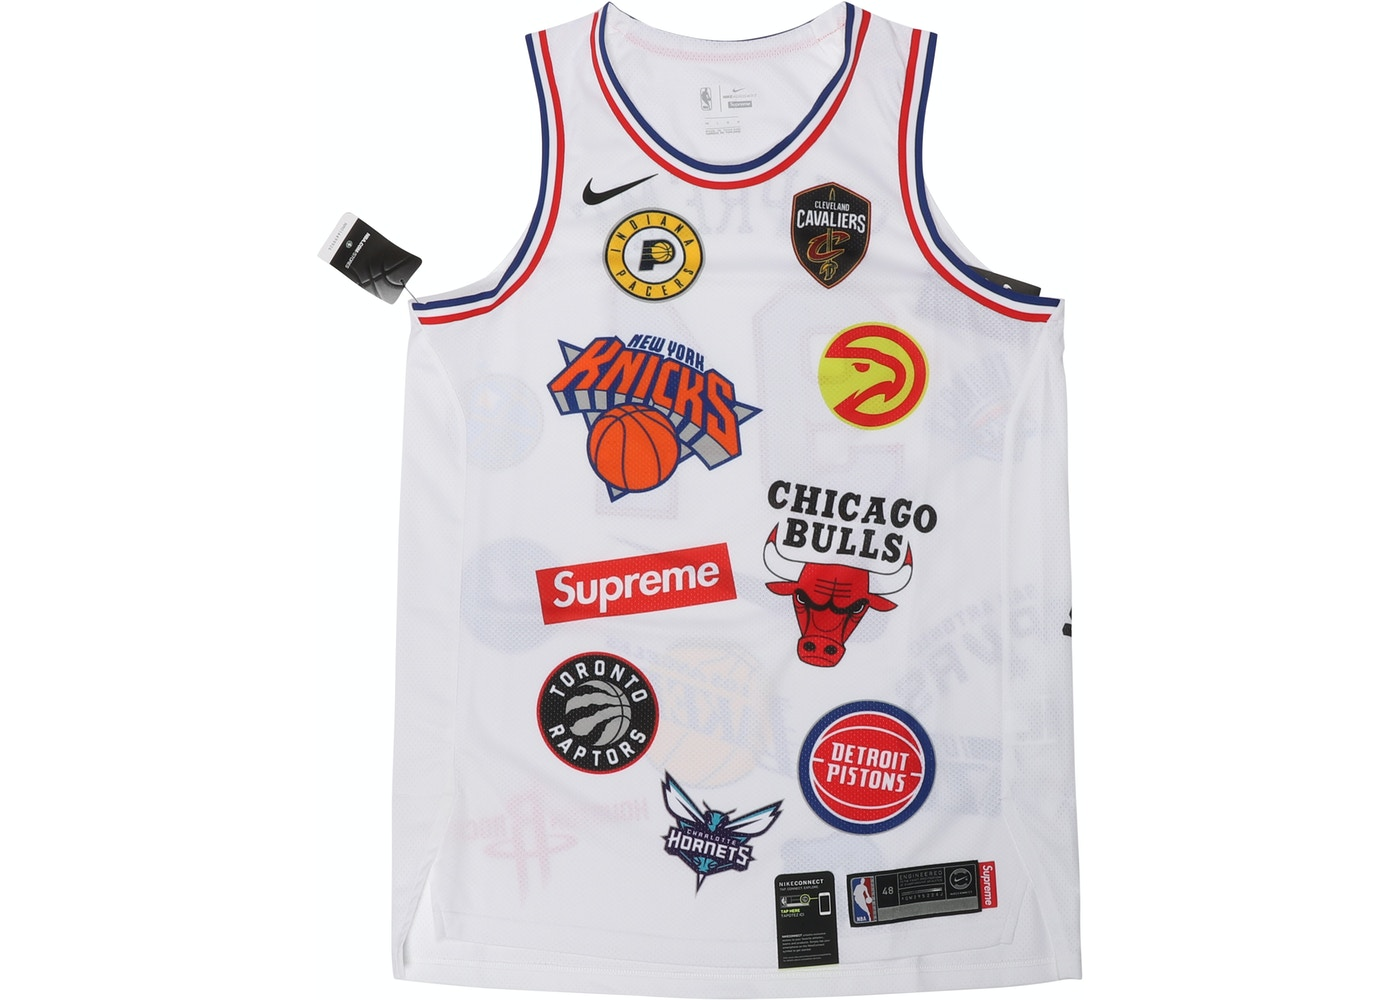 331ab2f7 Supreme Nike/NBA Teams Authentic Jersey White - SS18